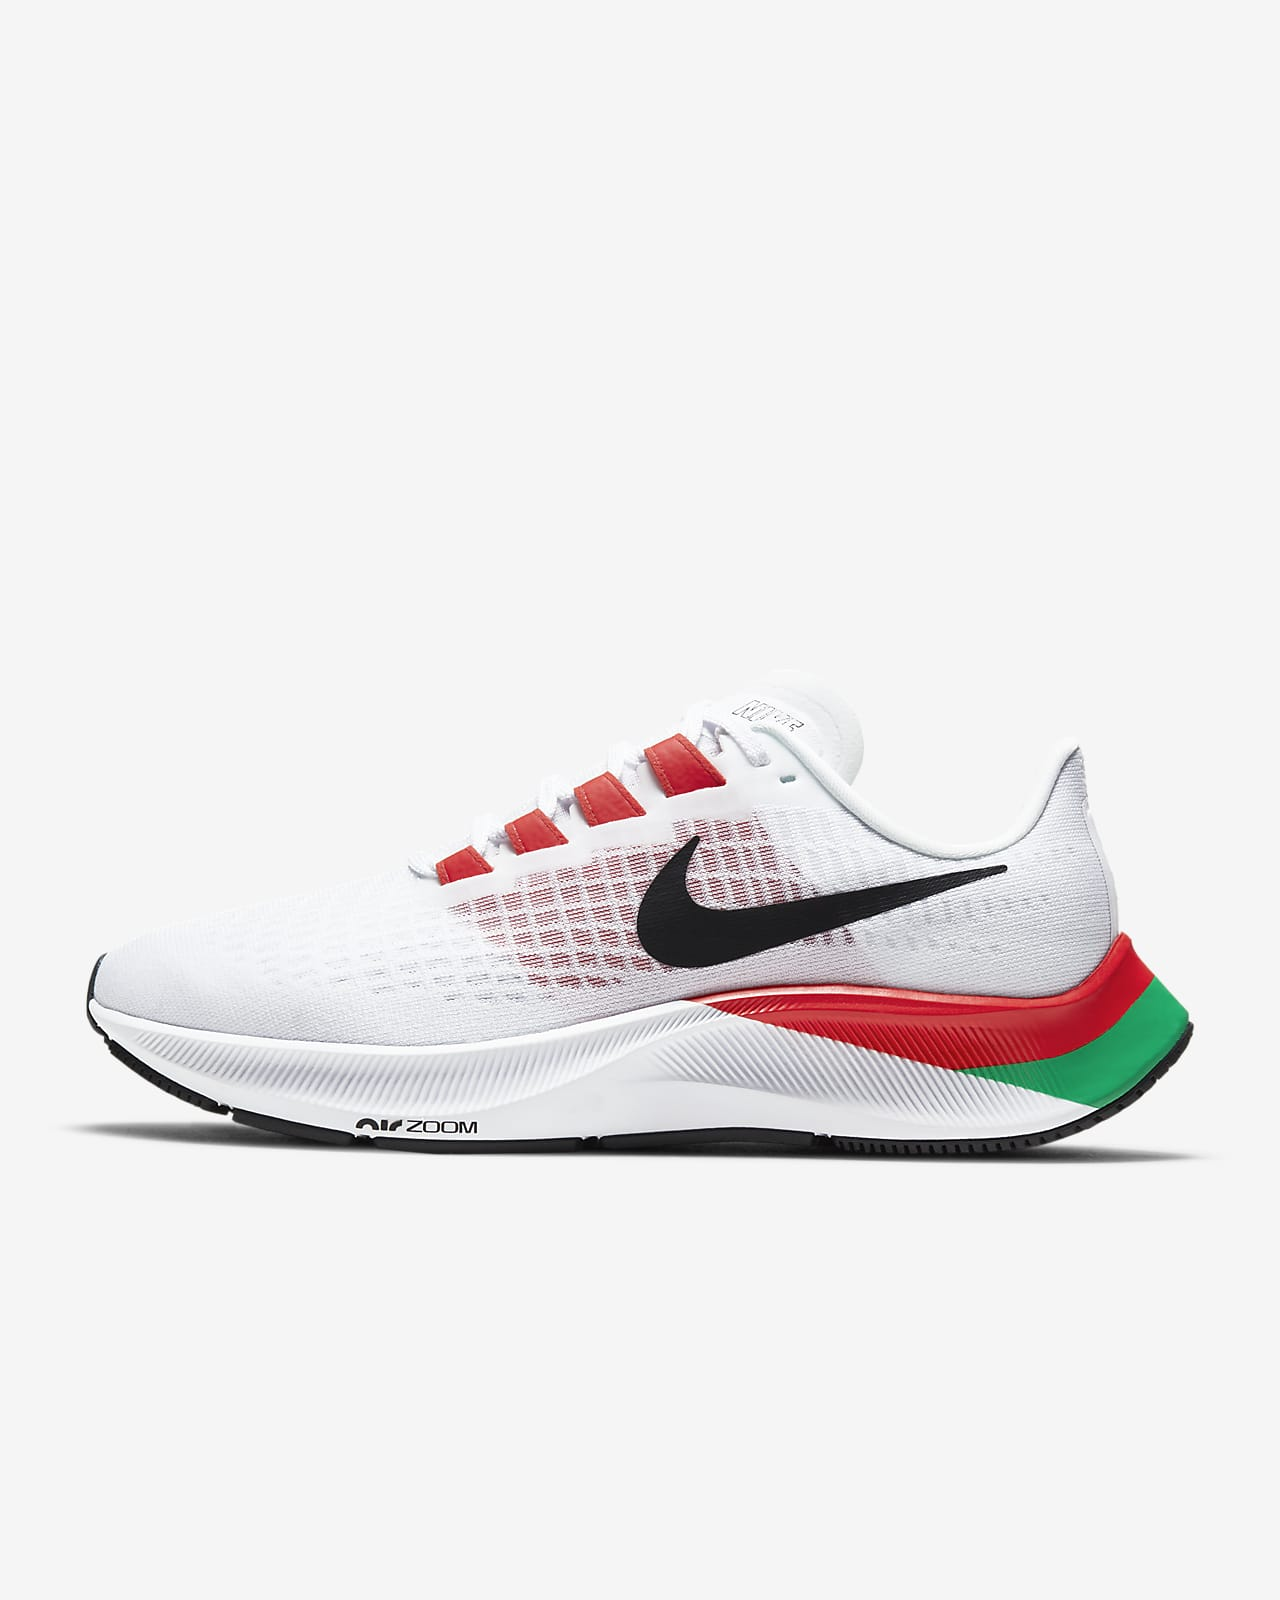 Nike Air Zoom Pegasus 37 EK 女子跑步鞋